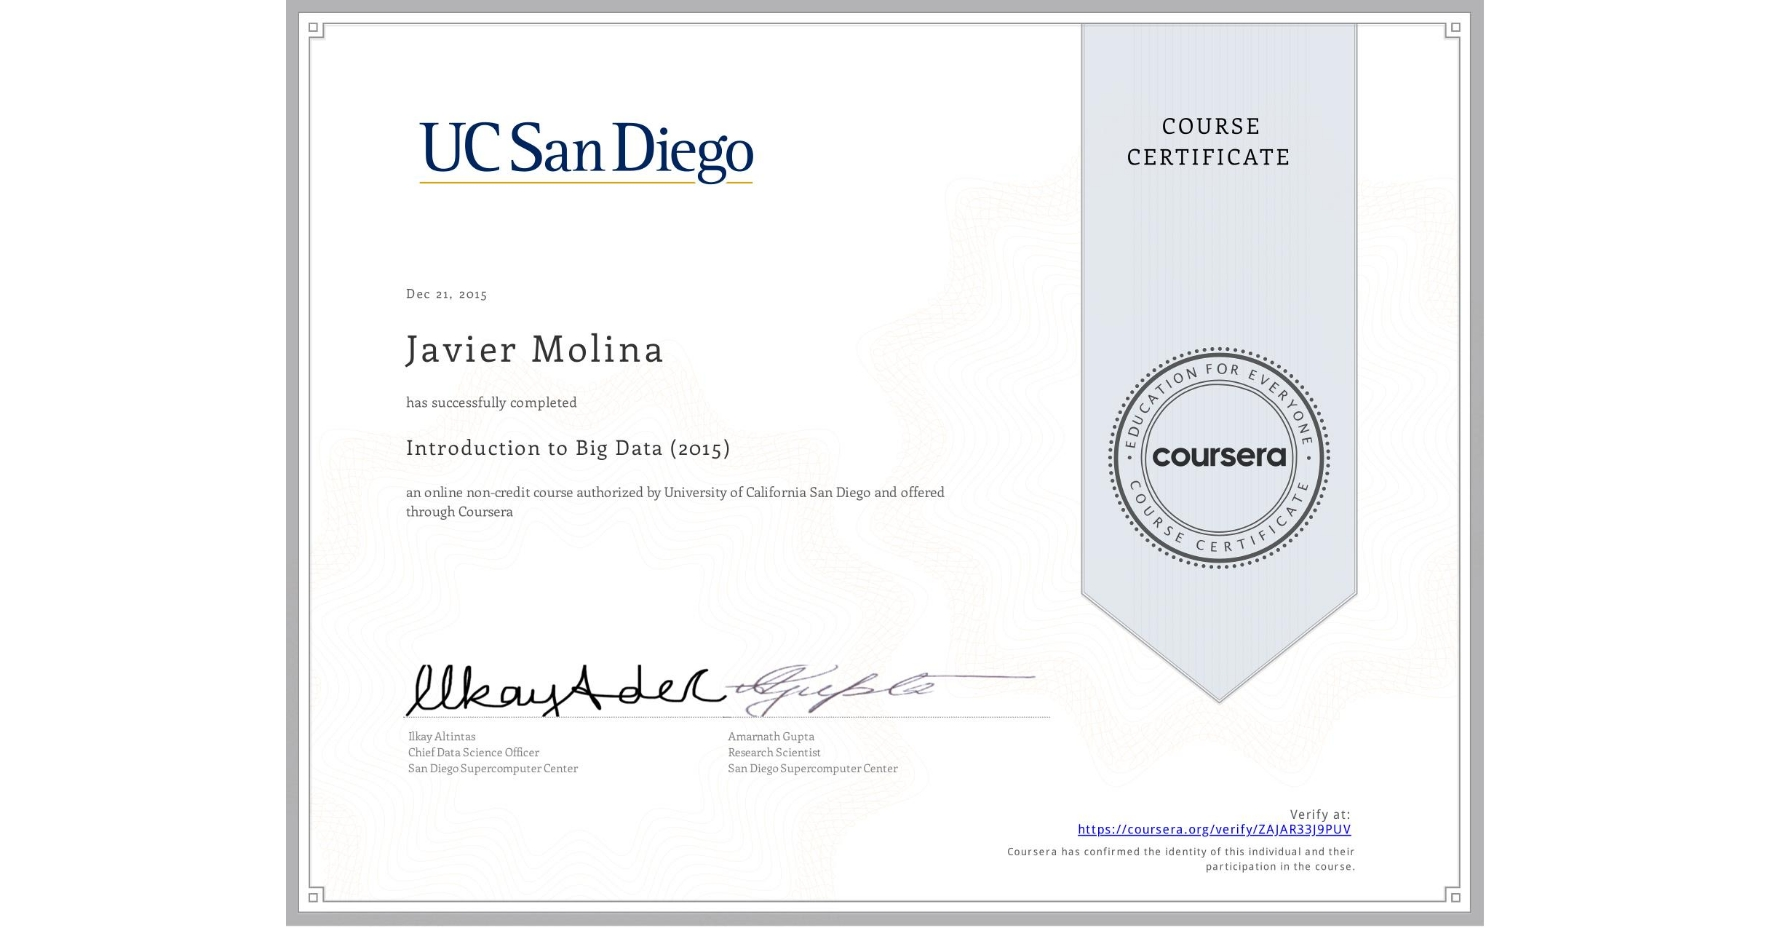 View certificate for Javier Molina, Introduction to Big Data (2015), an online non-credit course authorized by University of California San Diego and offered through Coursera